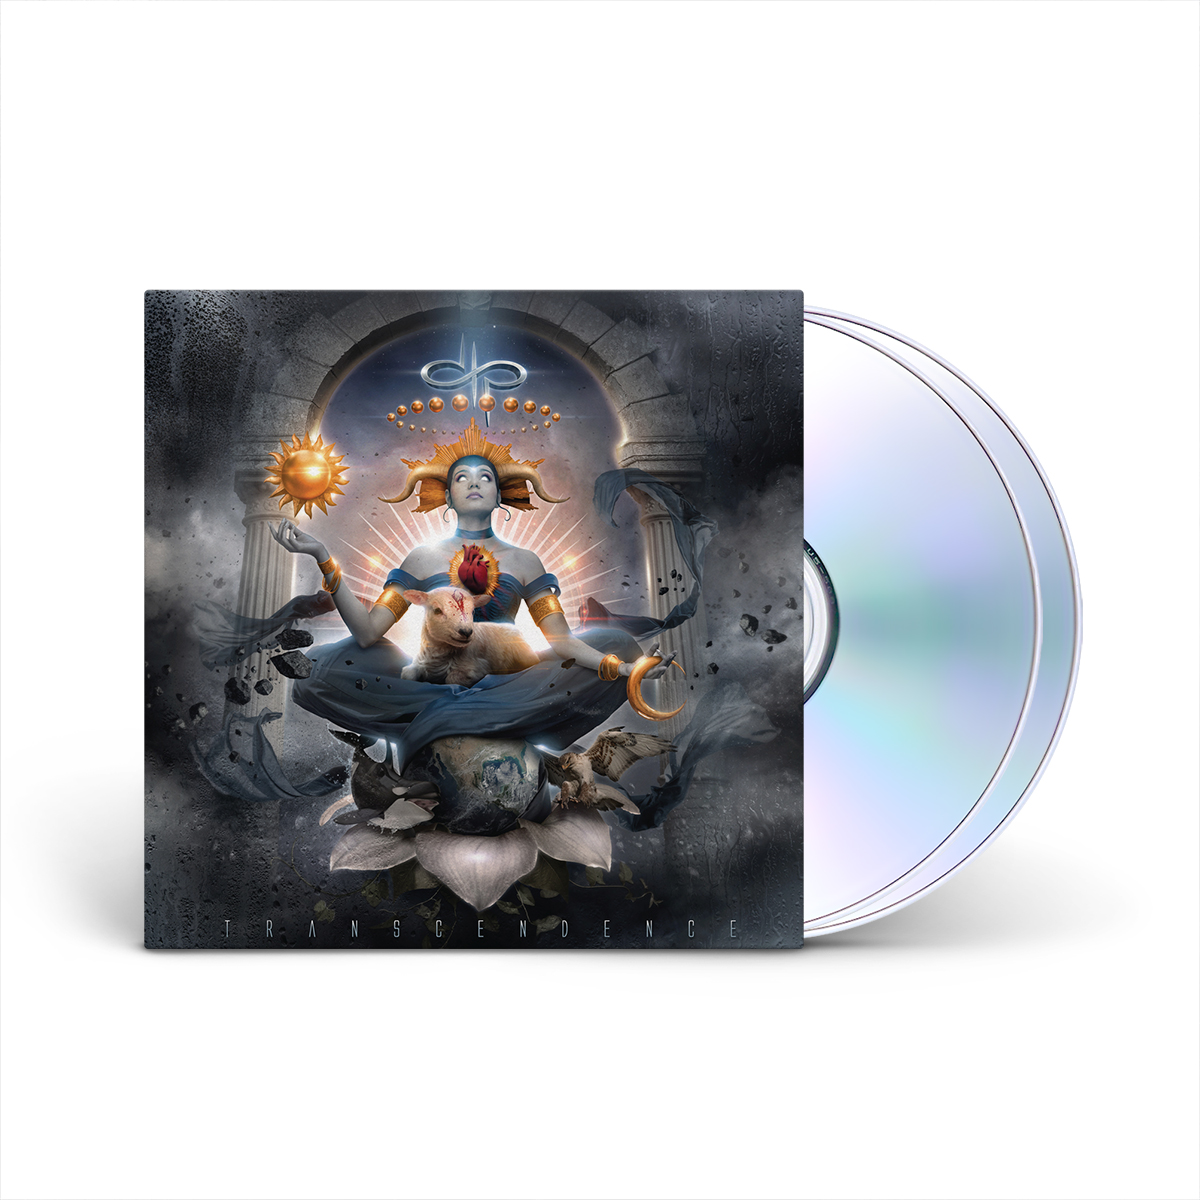 Devin Townsend Project - Transcendence Limited edition 2 CD Set